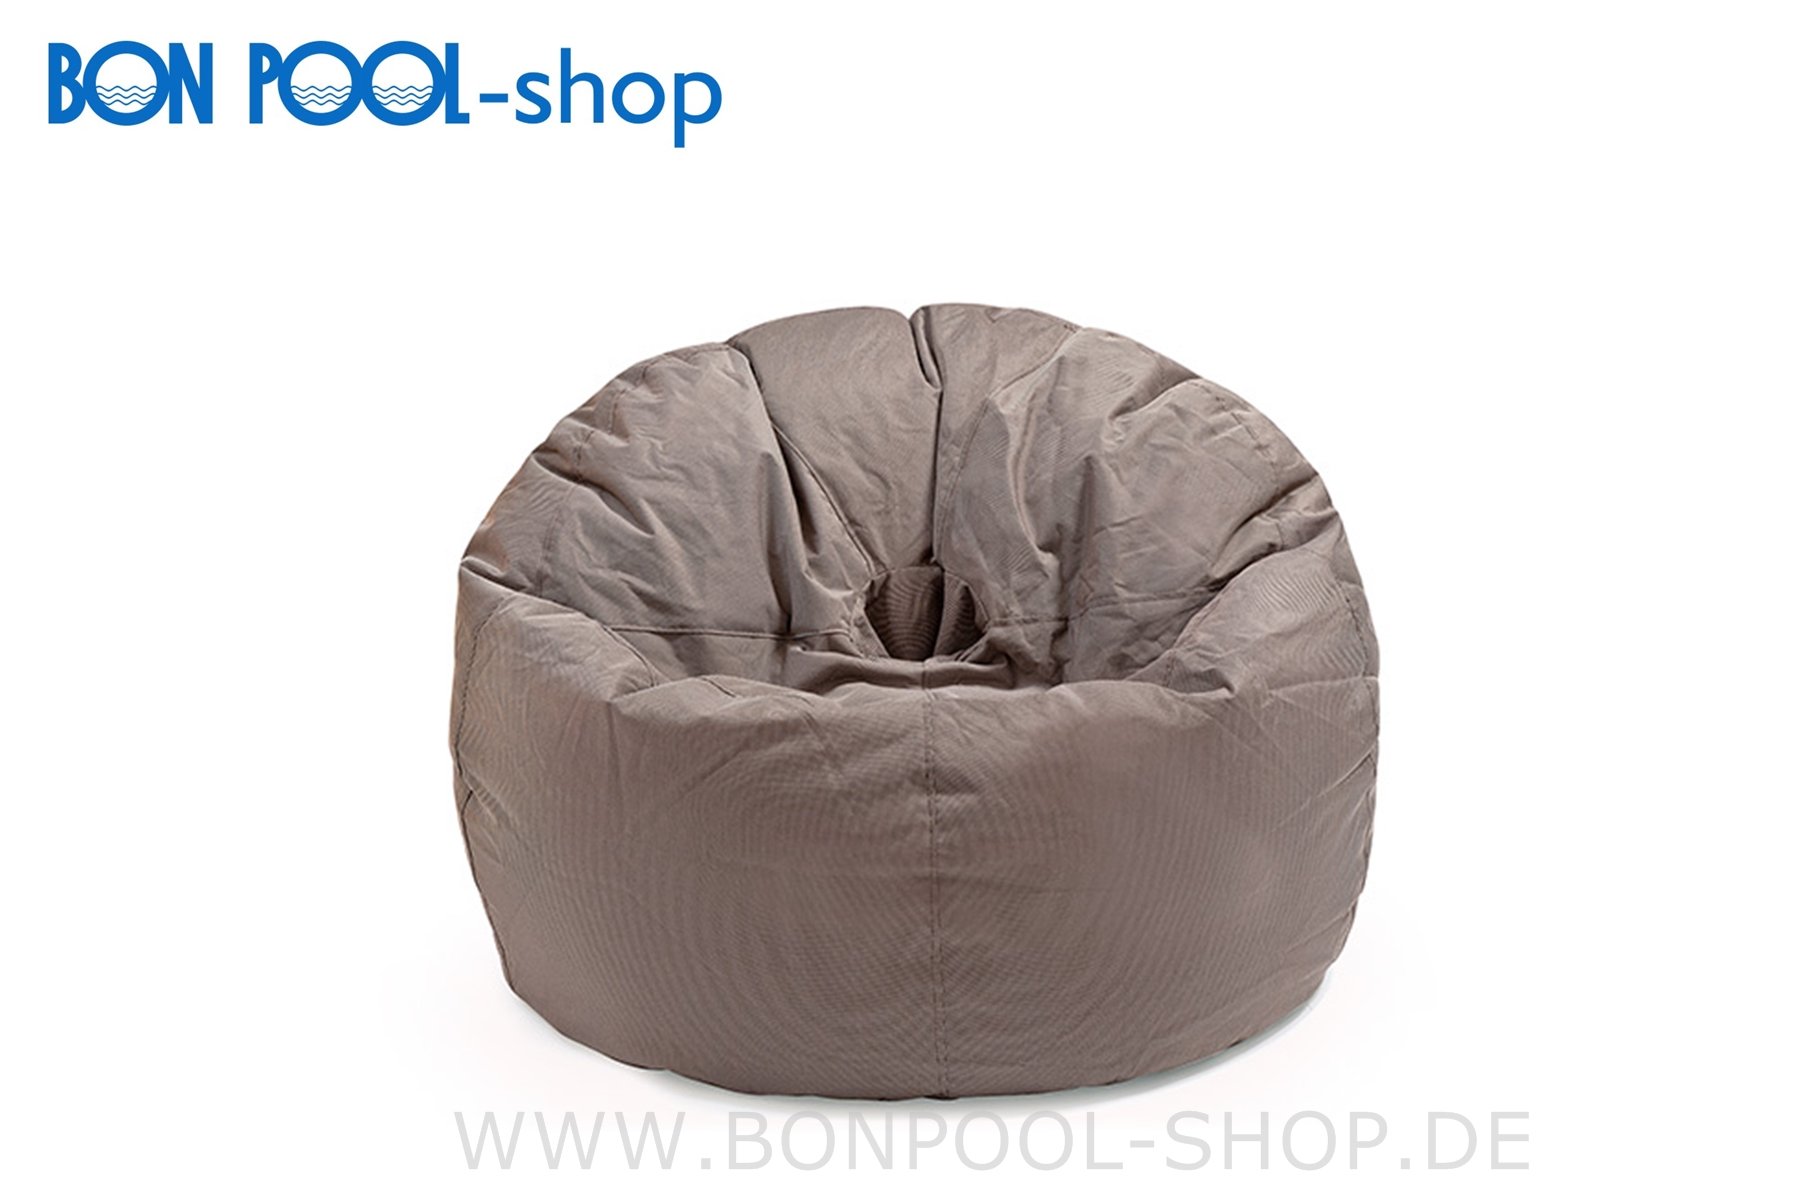 outbag donut cappuccino sitzsack garten bon pool. Black Bedroom Furniture Sets. Home Design Ideas